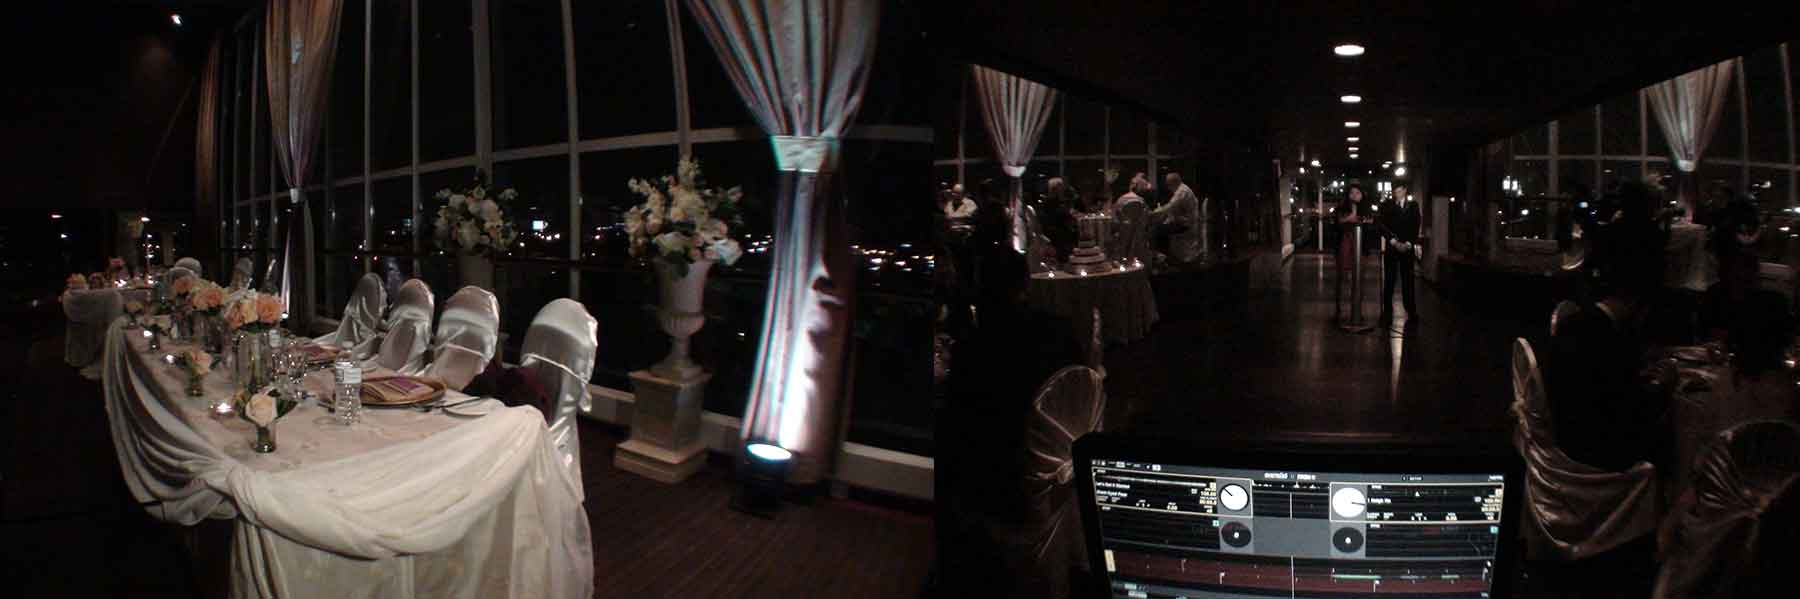 Wedding Dj Toronto at Atlantis Trillium Room